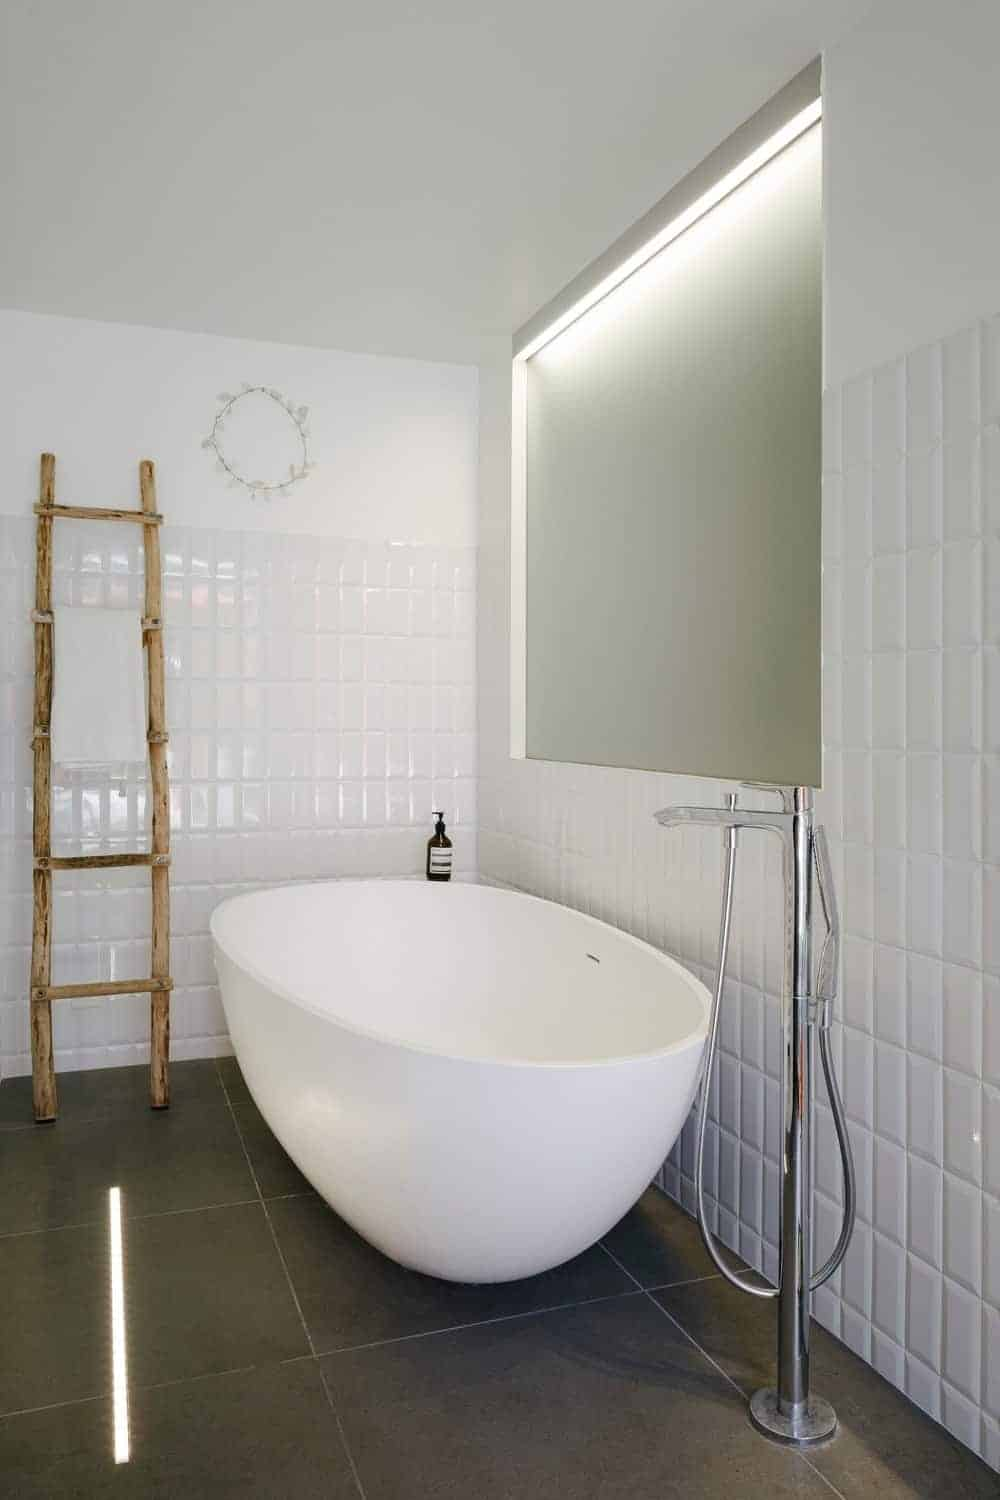 Gorgeous white bathroom with half tiled walls and freestanding tub on black flooring accompanied by a chrome faucet and rustic ladder that serves as a towel rack.